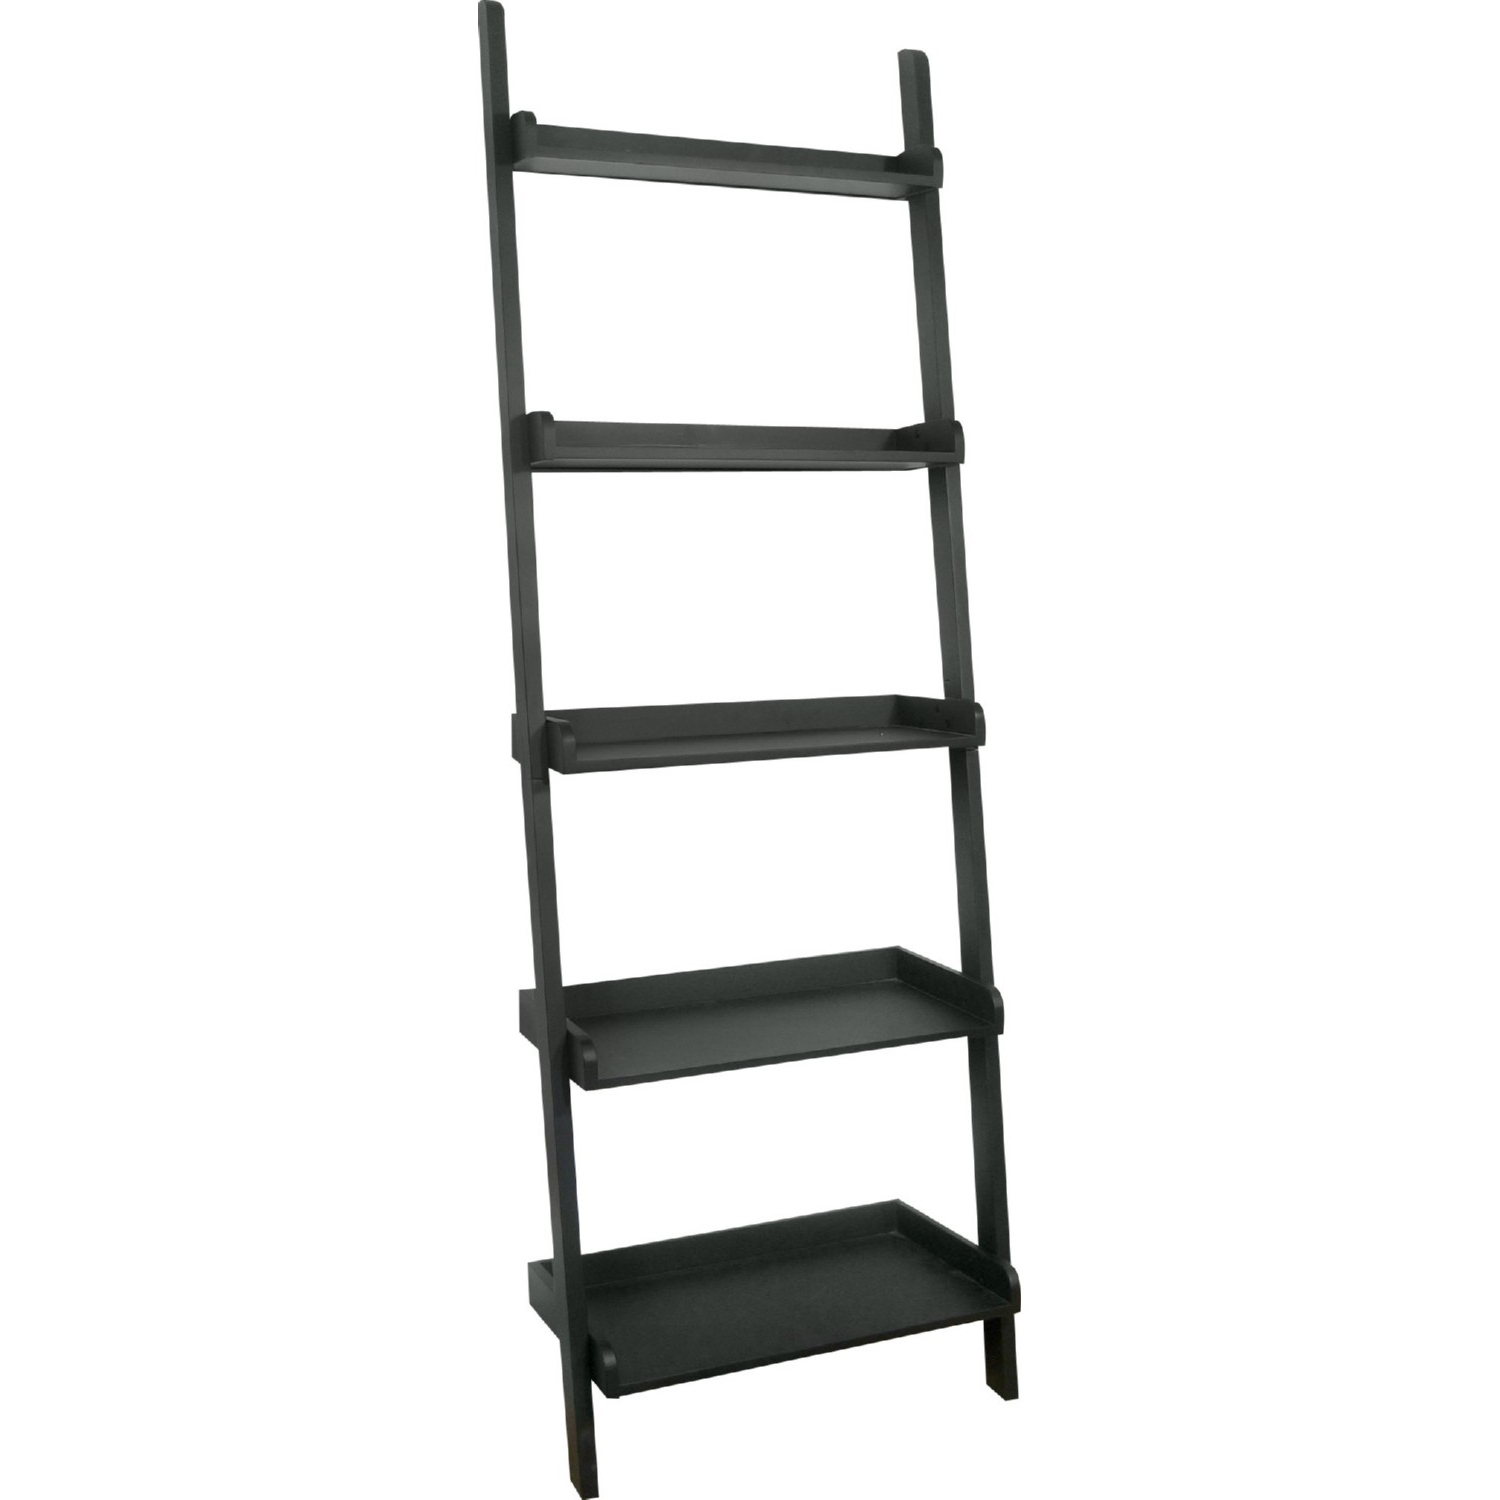 Preferred International Concepts Lean Shelf Unit 5 Shelves Black Throughout Nailsworth Ladder Bookcases (View 18 of 20)